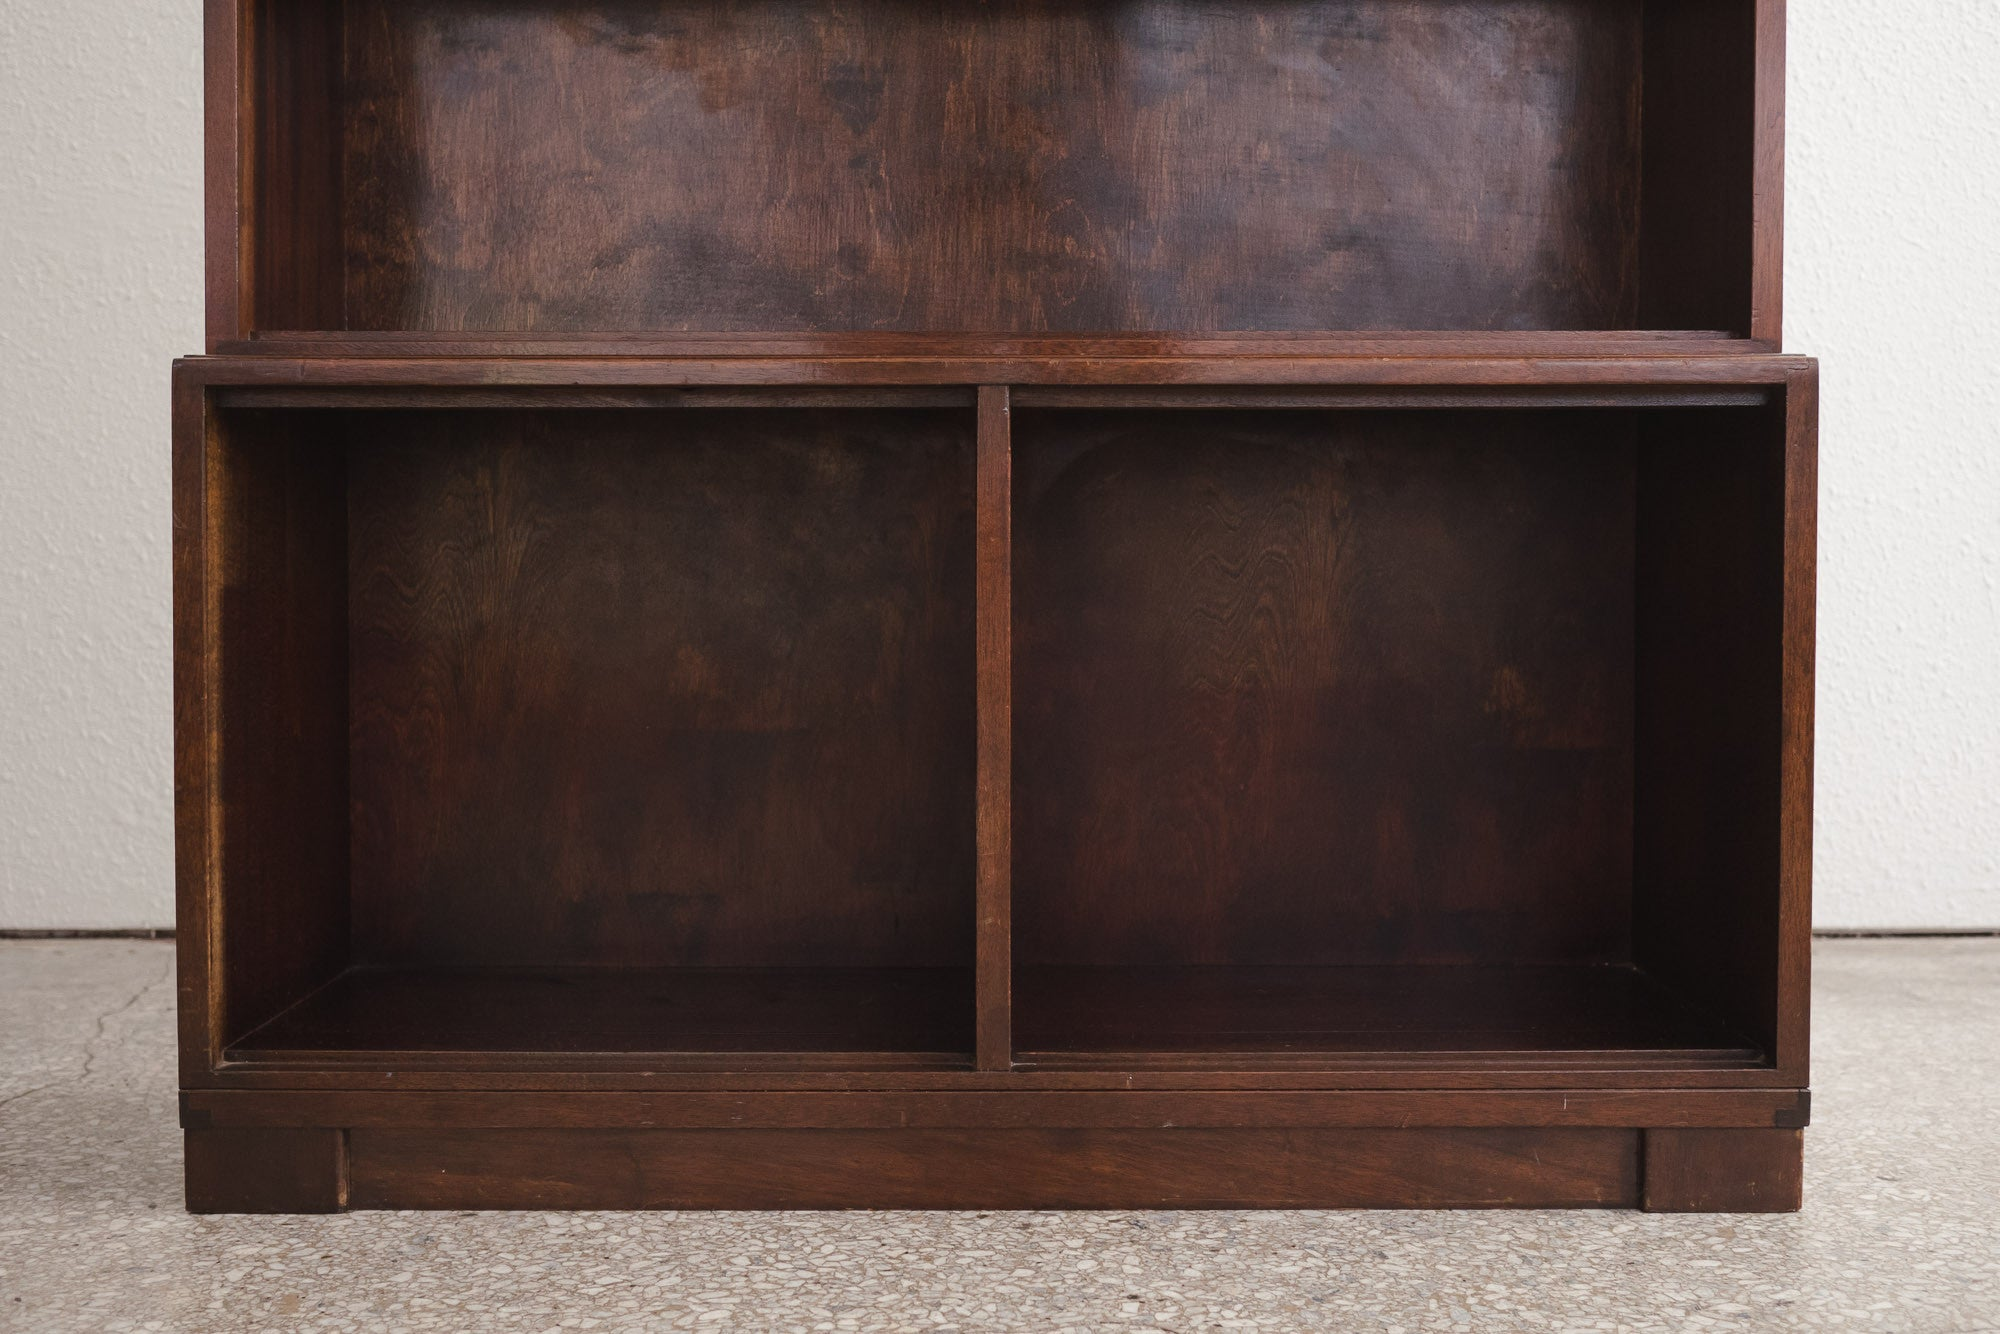 Antique Modular Bookshelf